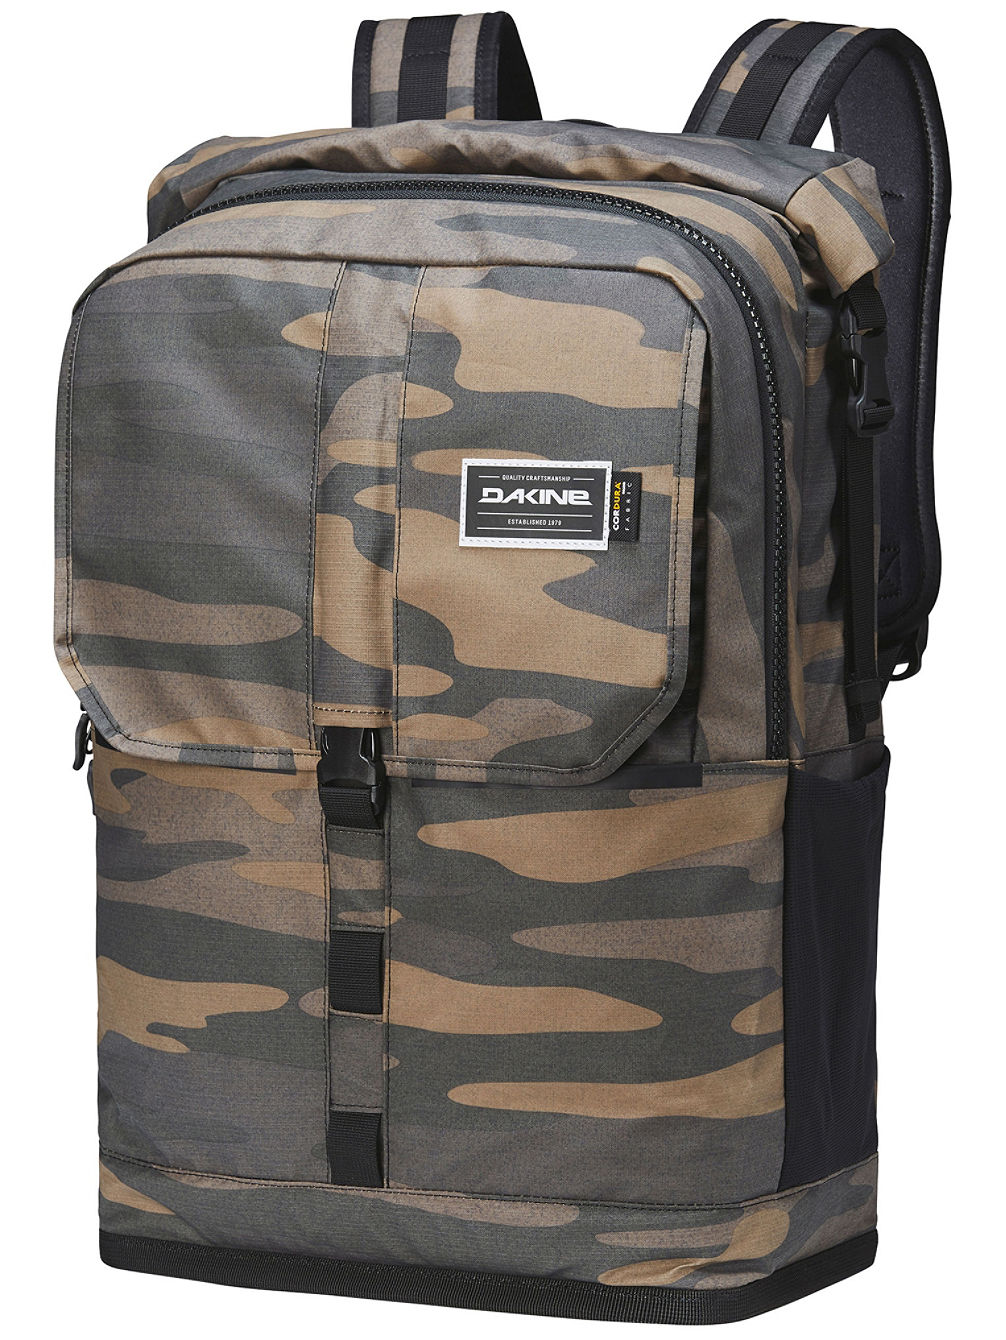 Cyclone Wet/Dry 32L Backpack